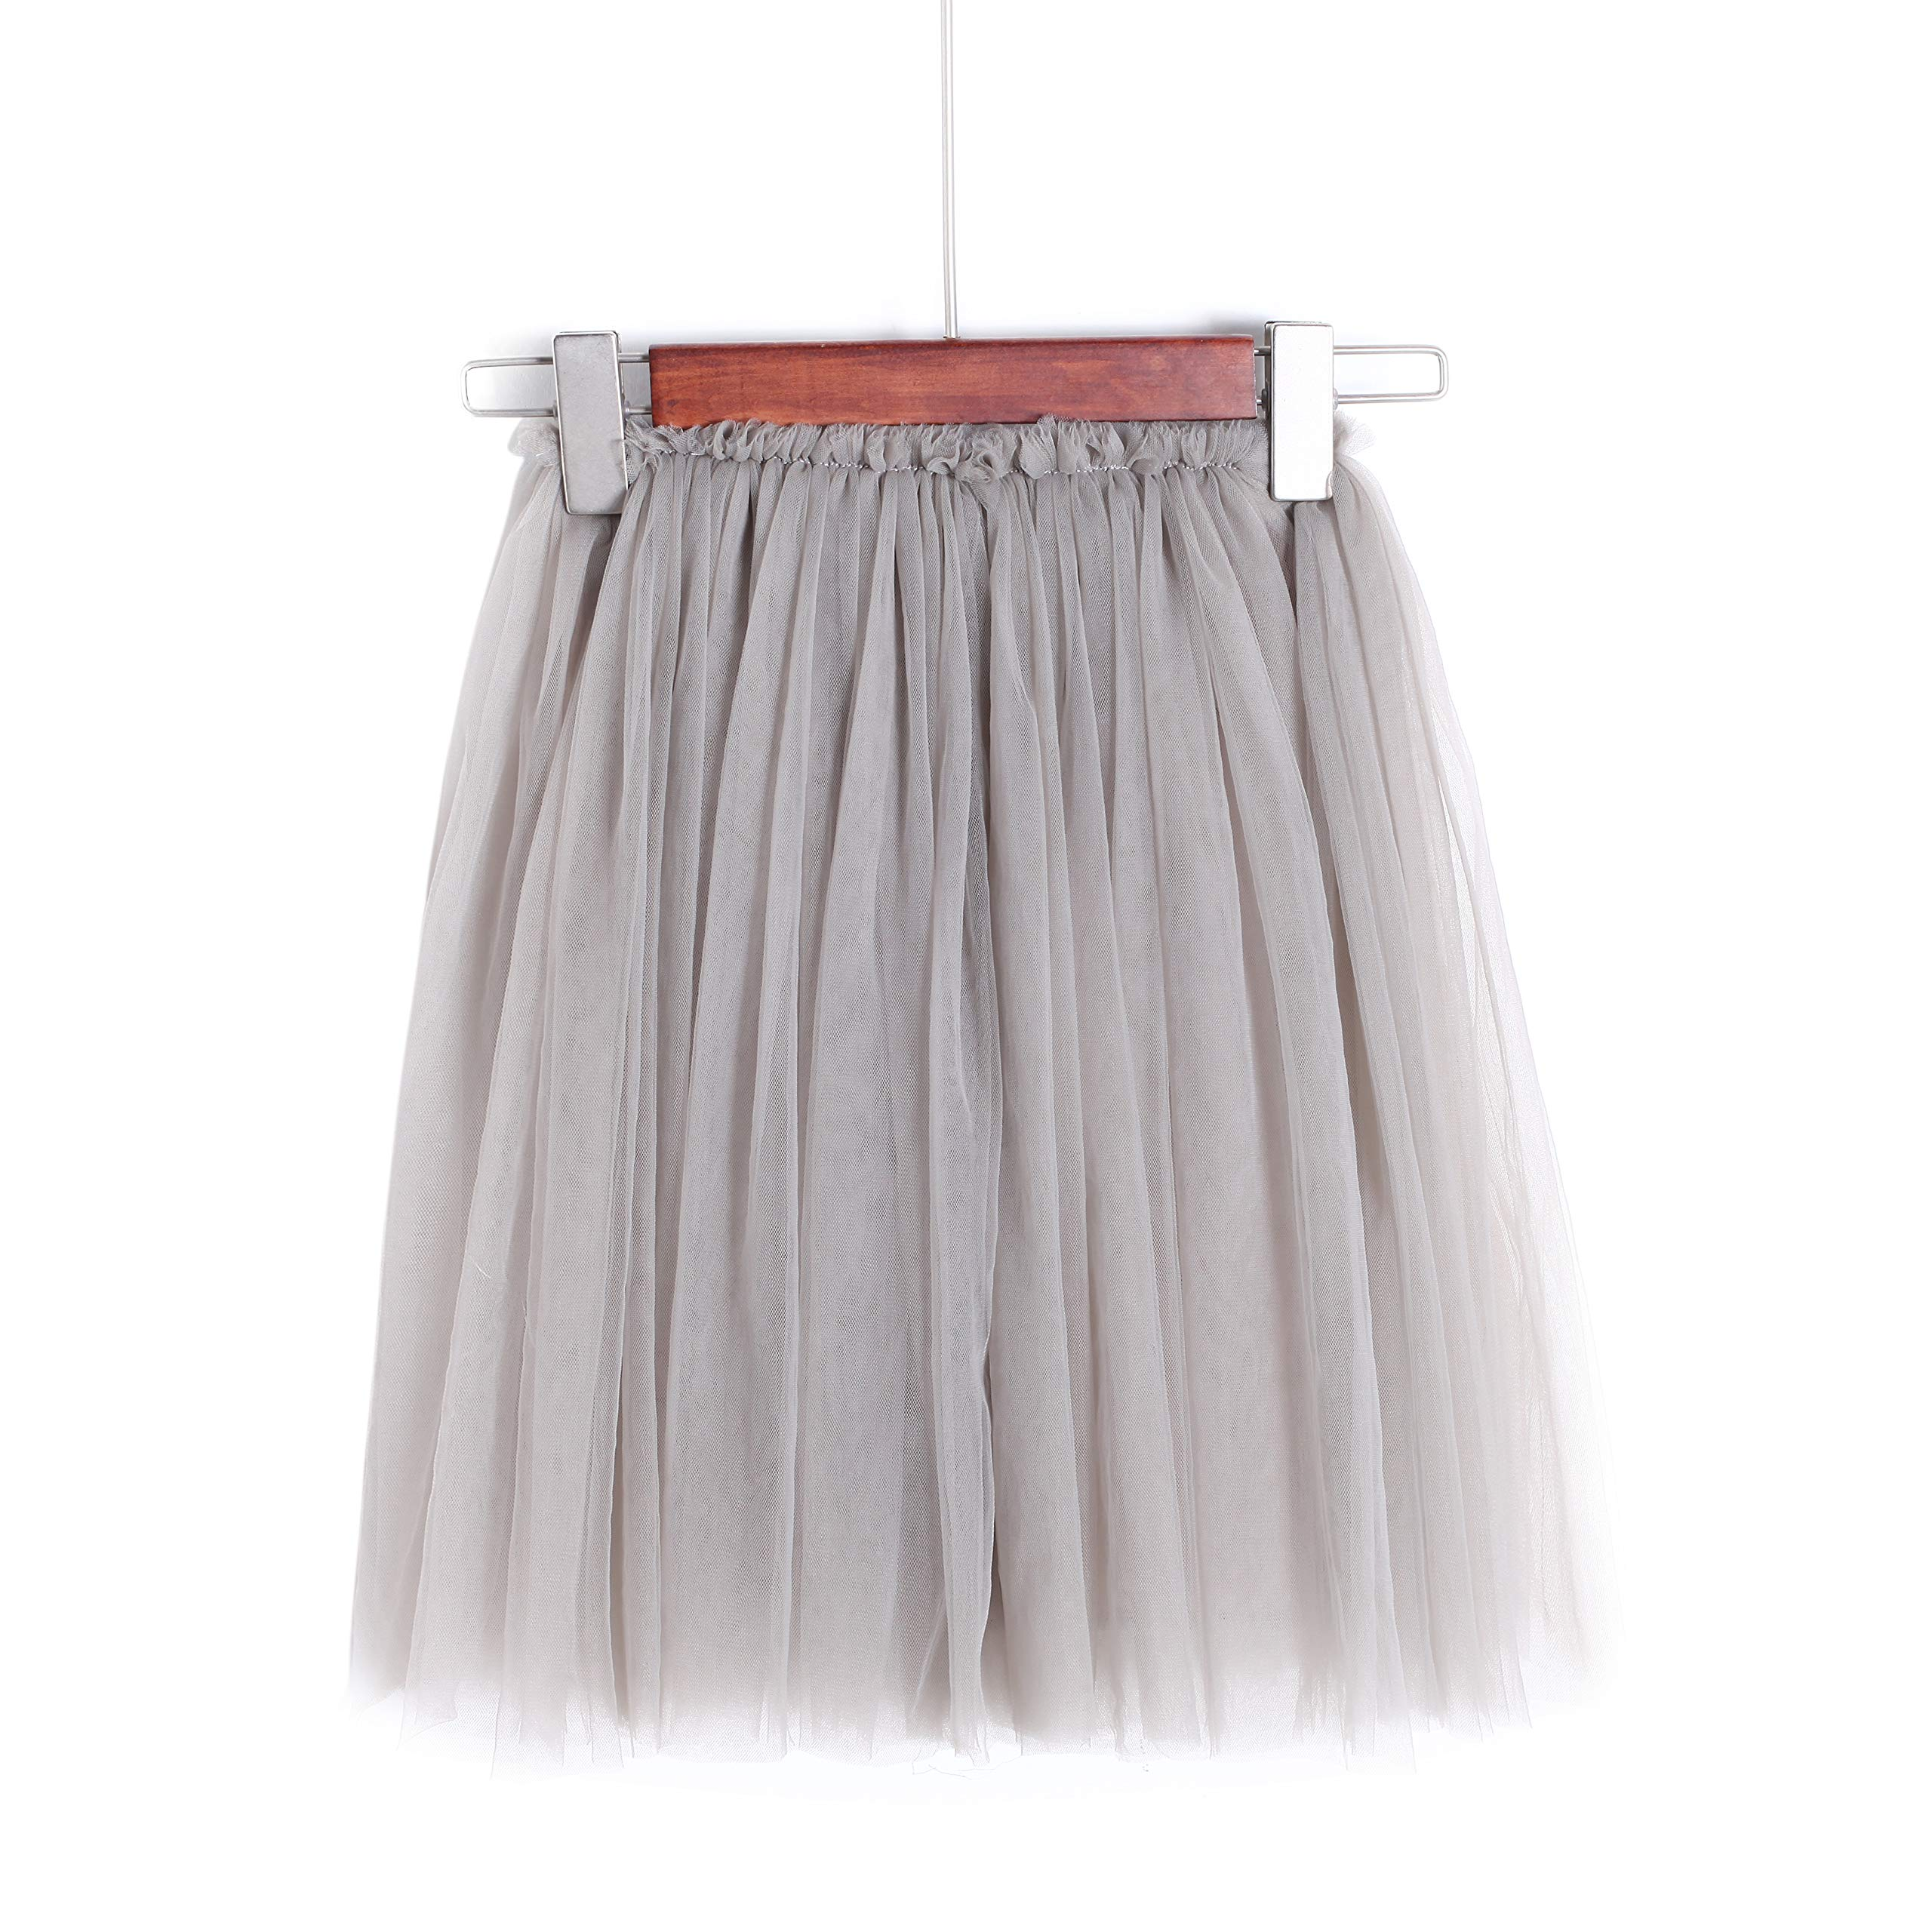 Flofallzique Tulle Tutu Girls Skirts for 1-12 Years Old Dancing Party Toddler Clothes(6, Gray) by Flofallzique (Image #2)